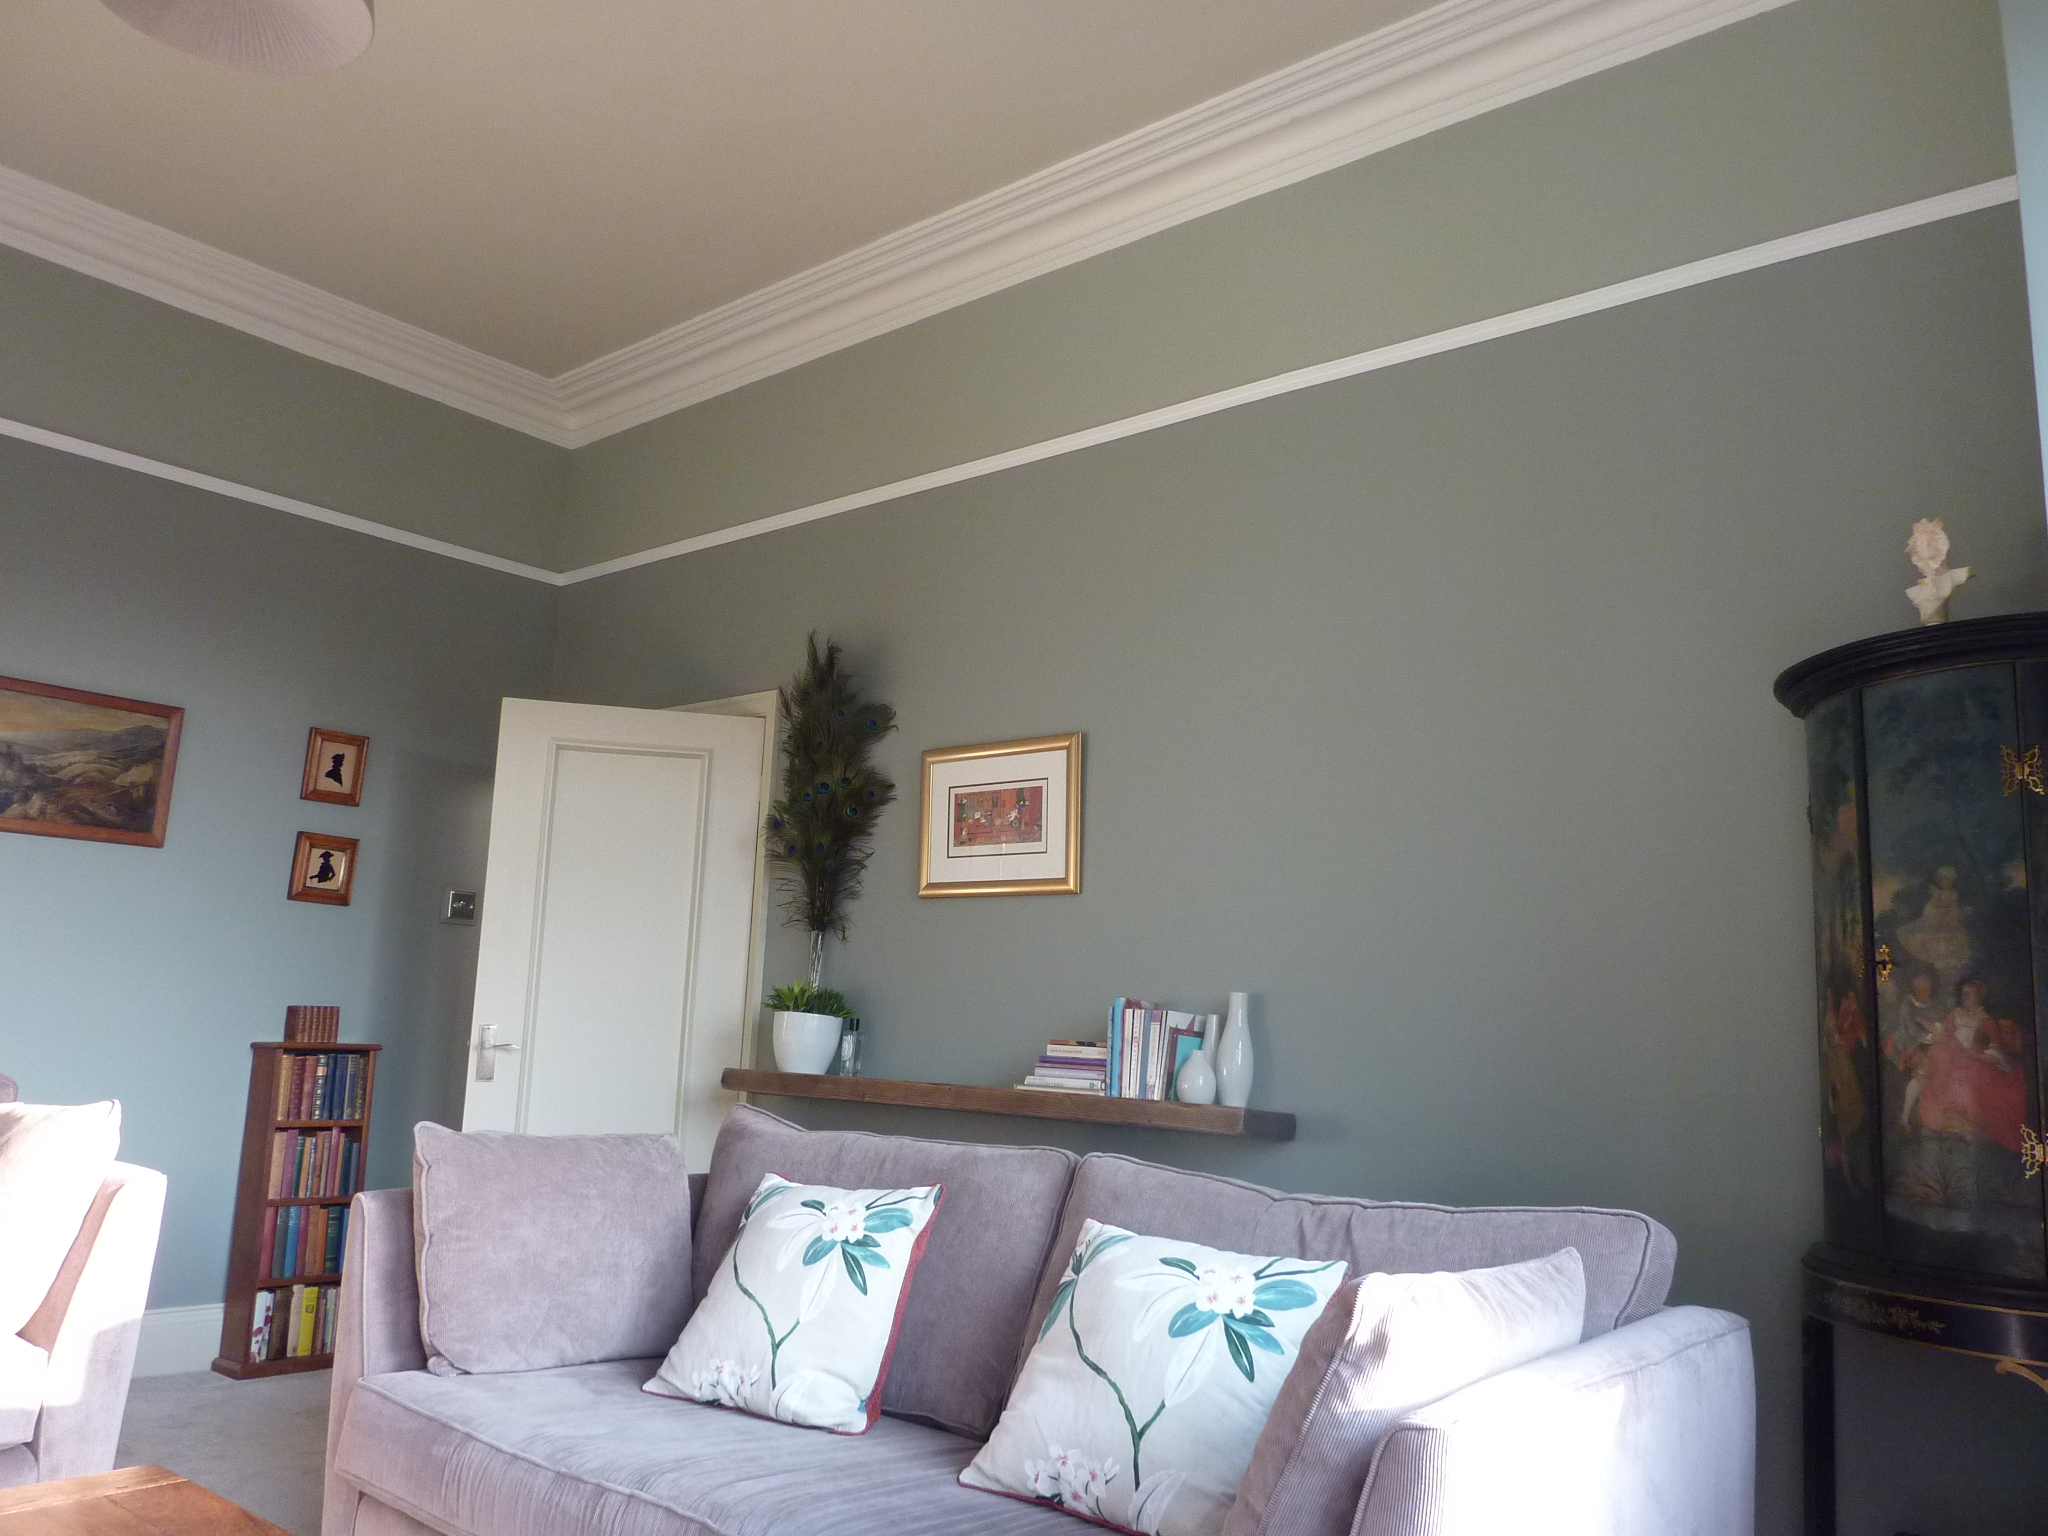 Sitting Room Farrow And Ball Pigeon Blue Gray Off White Pointing Part 96